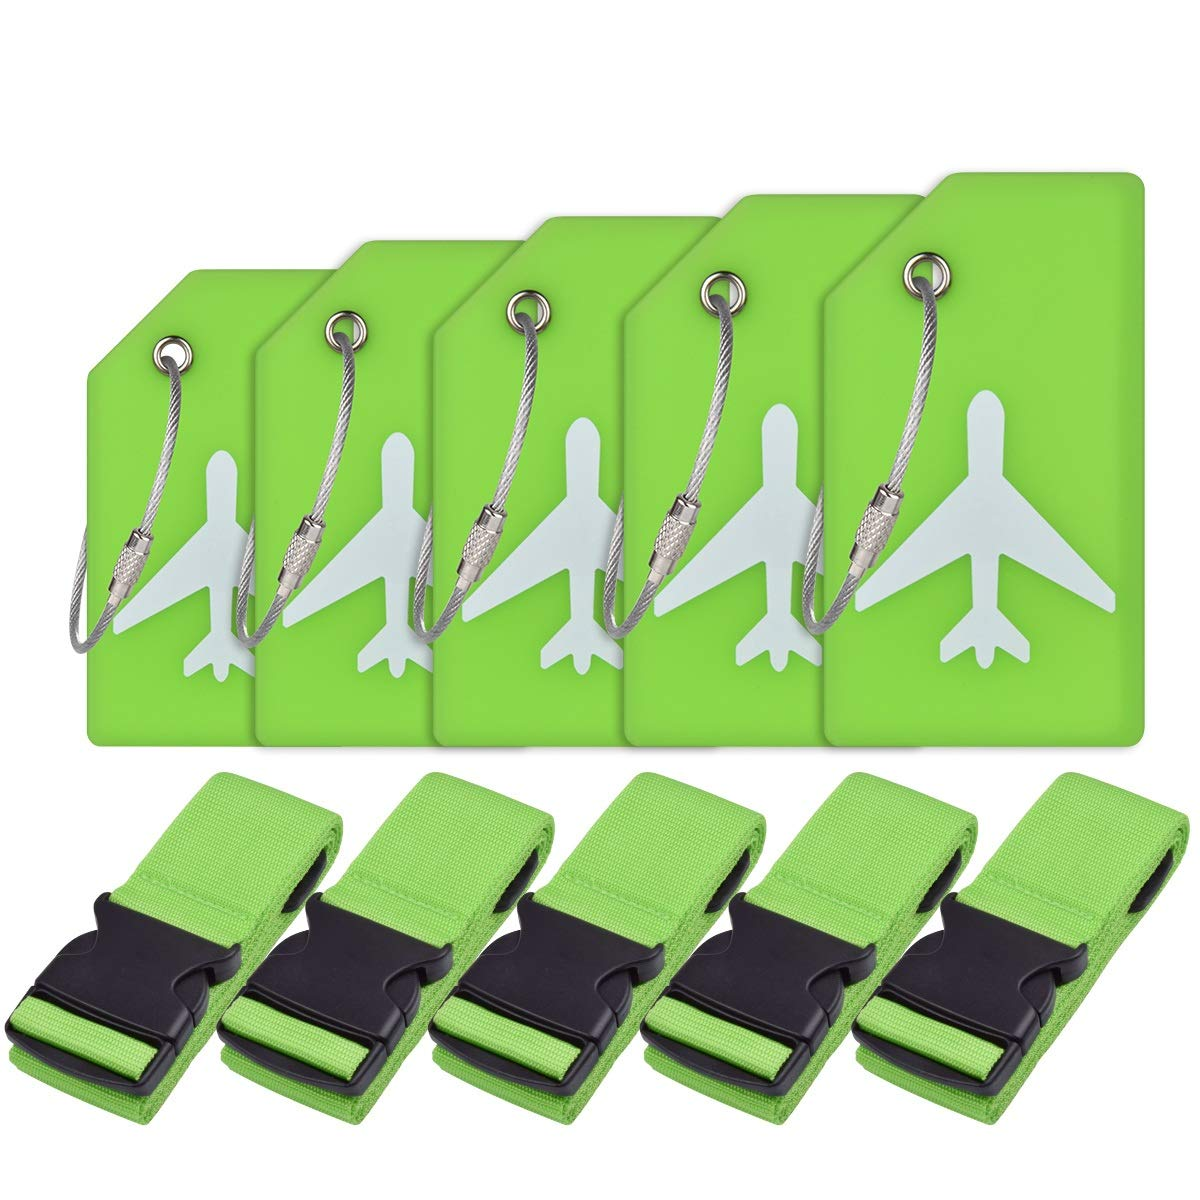 Luggage Accessories-Luggage Straps/Luggage Tags By Ovener (Green 5 Set) by Ovener